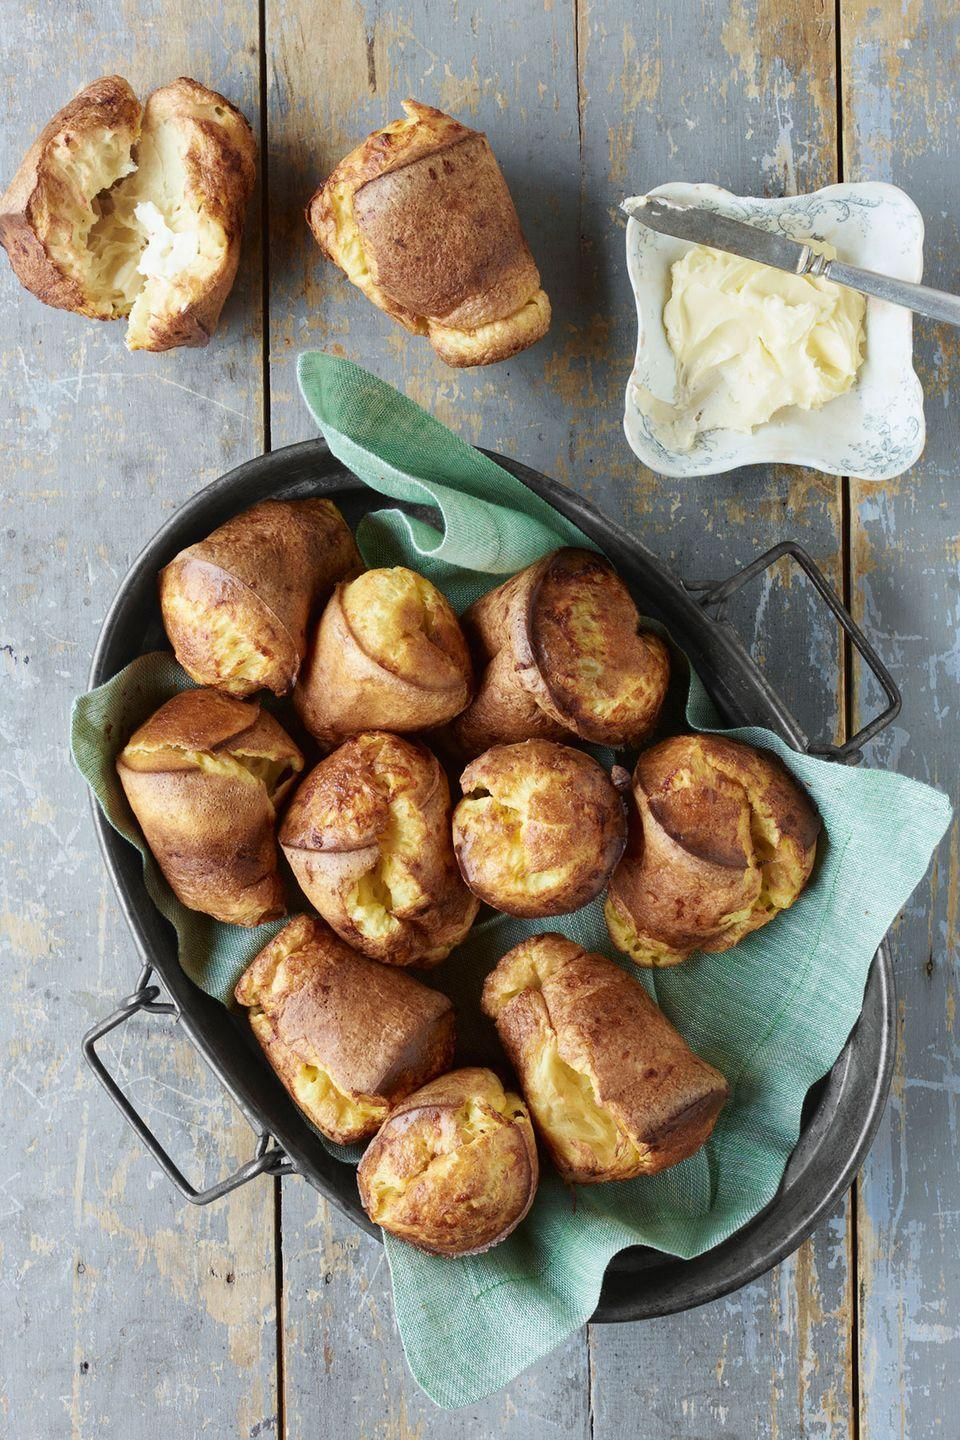 "<p>Trade in traditional bread rolls for Cheddar popovers. </p><p><strong><a href=""https://www.countryliving.com/food-drinks/recipes/a4149/cheddar-popovers-recipe-clv0413/"" rel=""nofollow noopener"" target=""_blank"" data-ylk=""slk:Get the recipe"" class=""link rapid-noclick-resp"">Get the recipe</a>.</strong></p>"